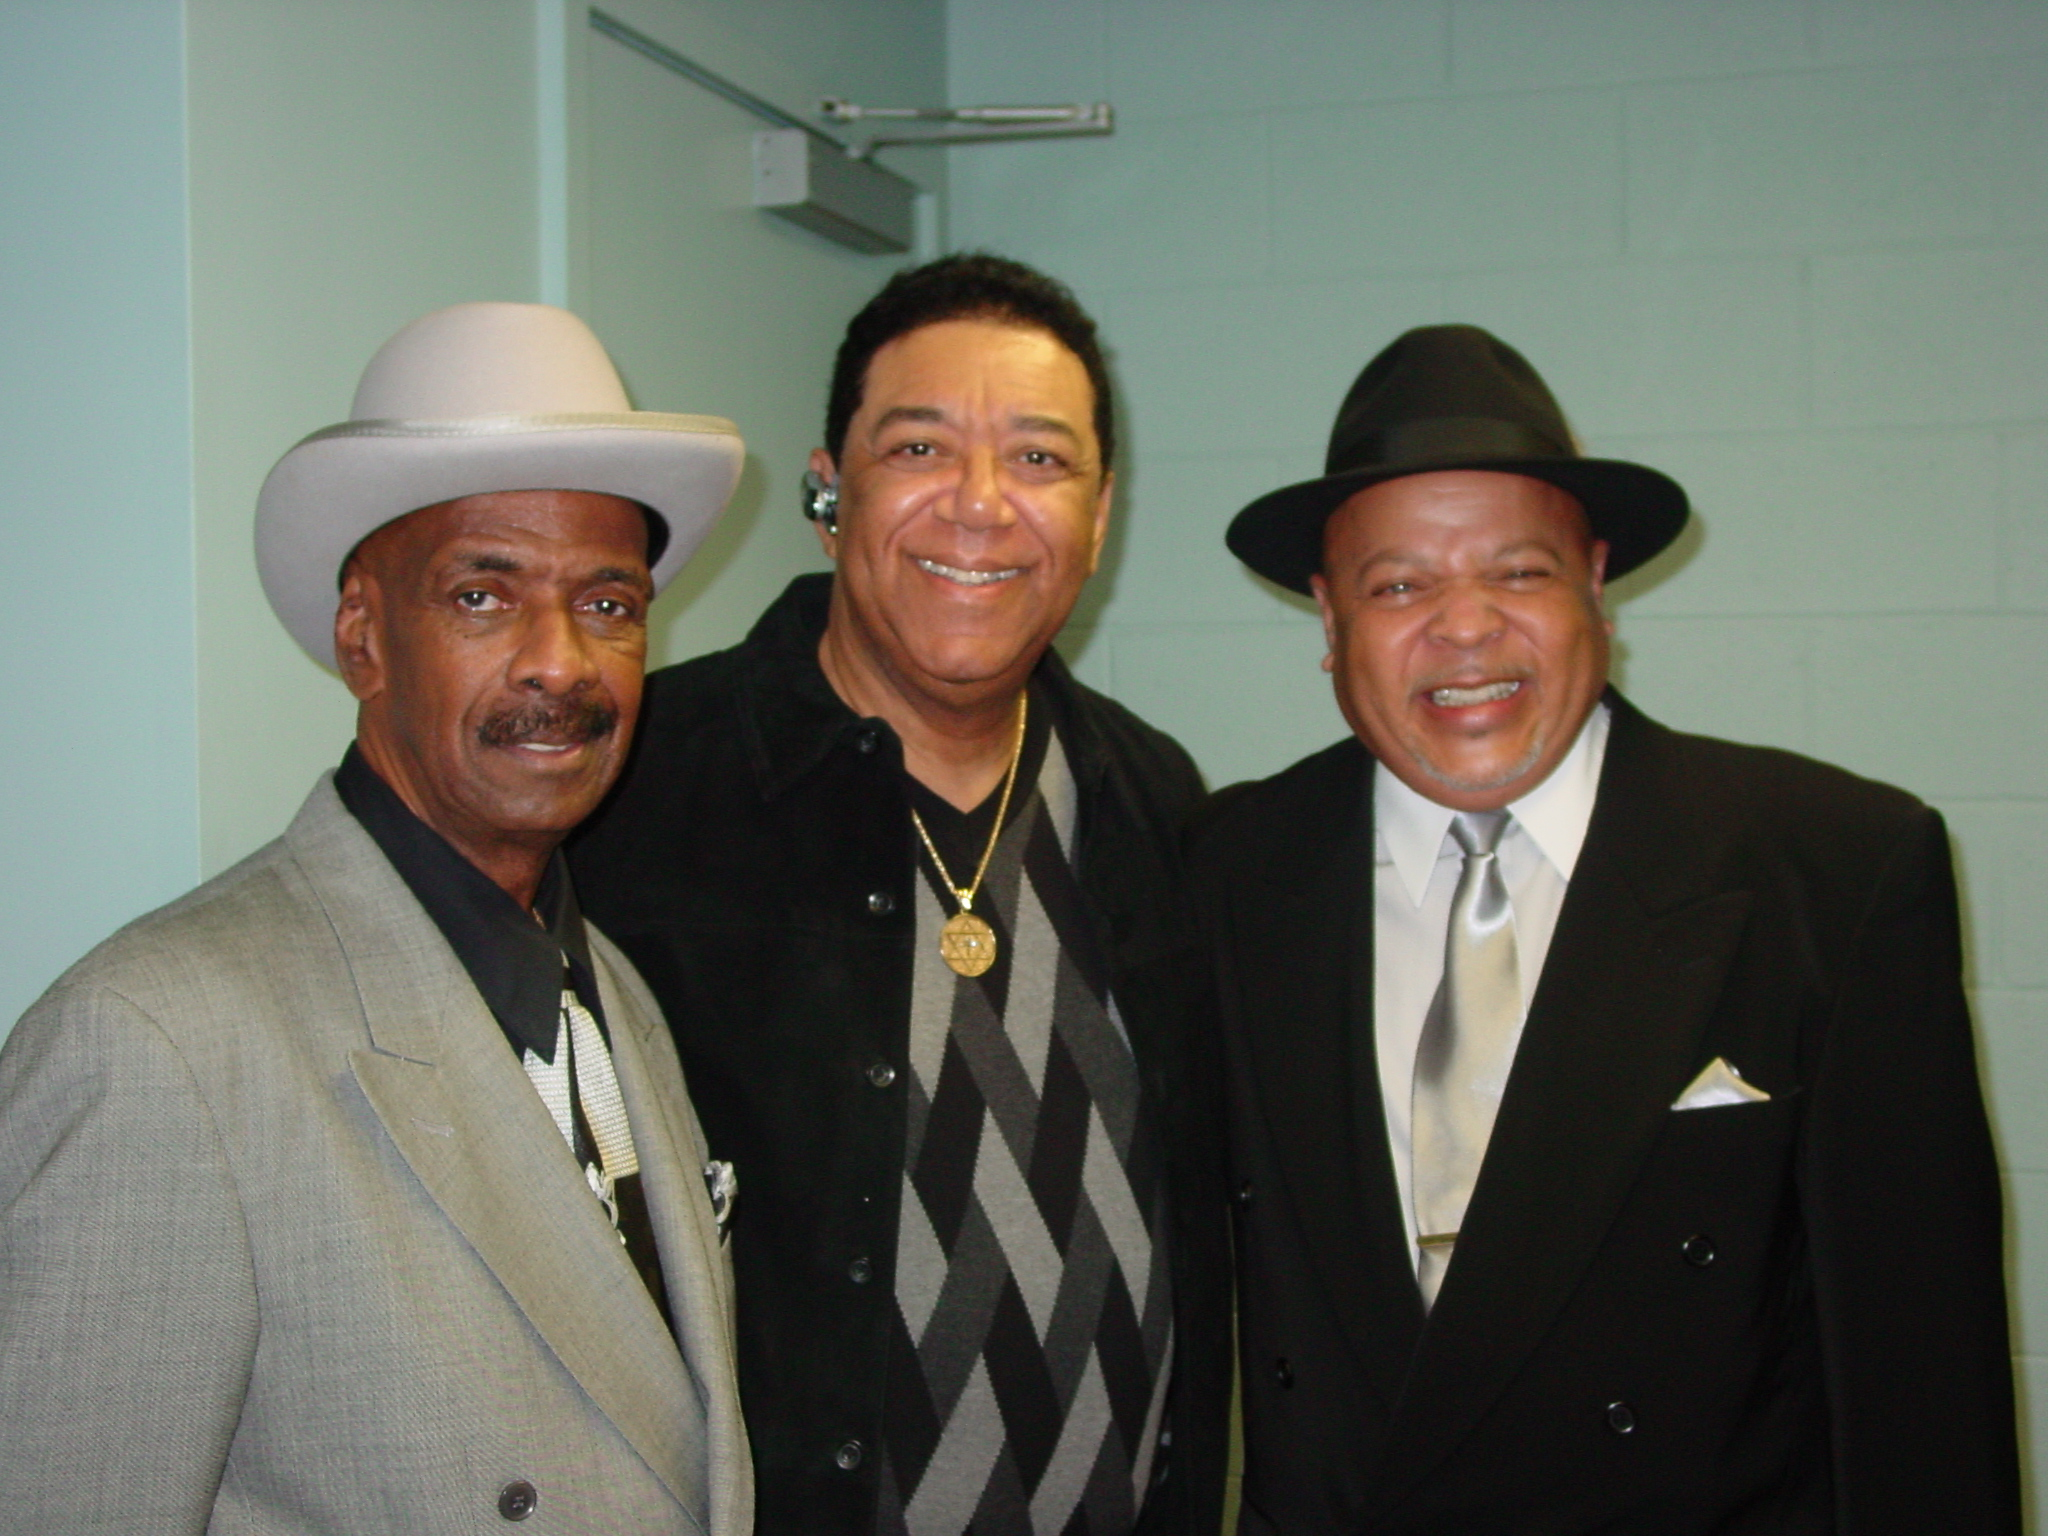 Joe Billingslea (one of the original Contours), Terry and Spyder Turner